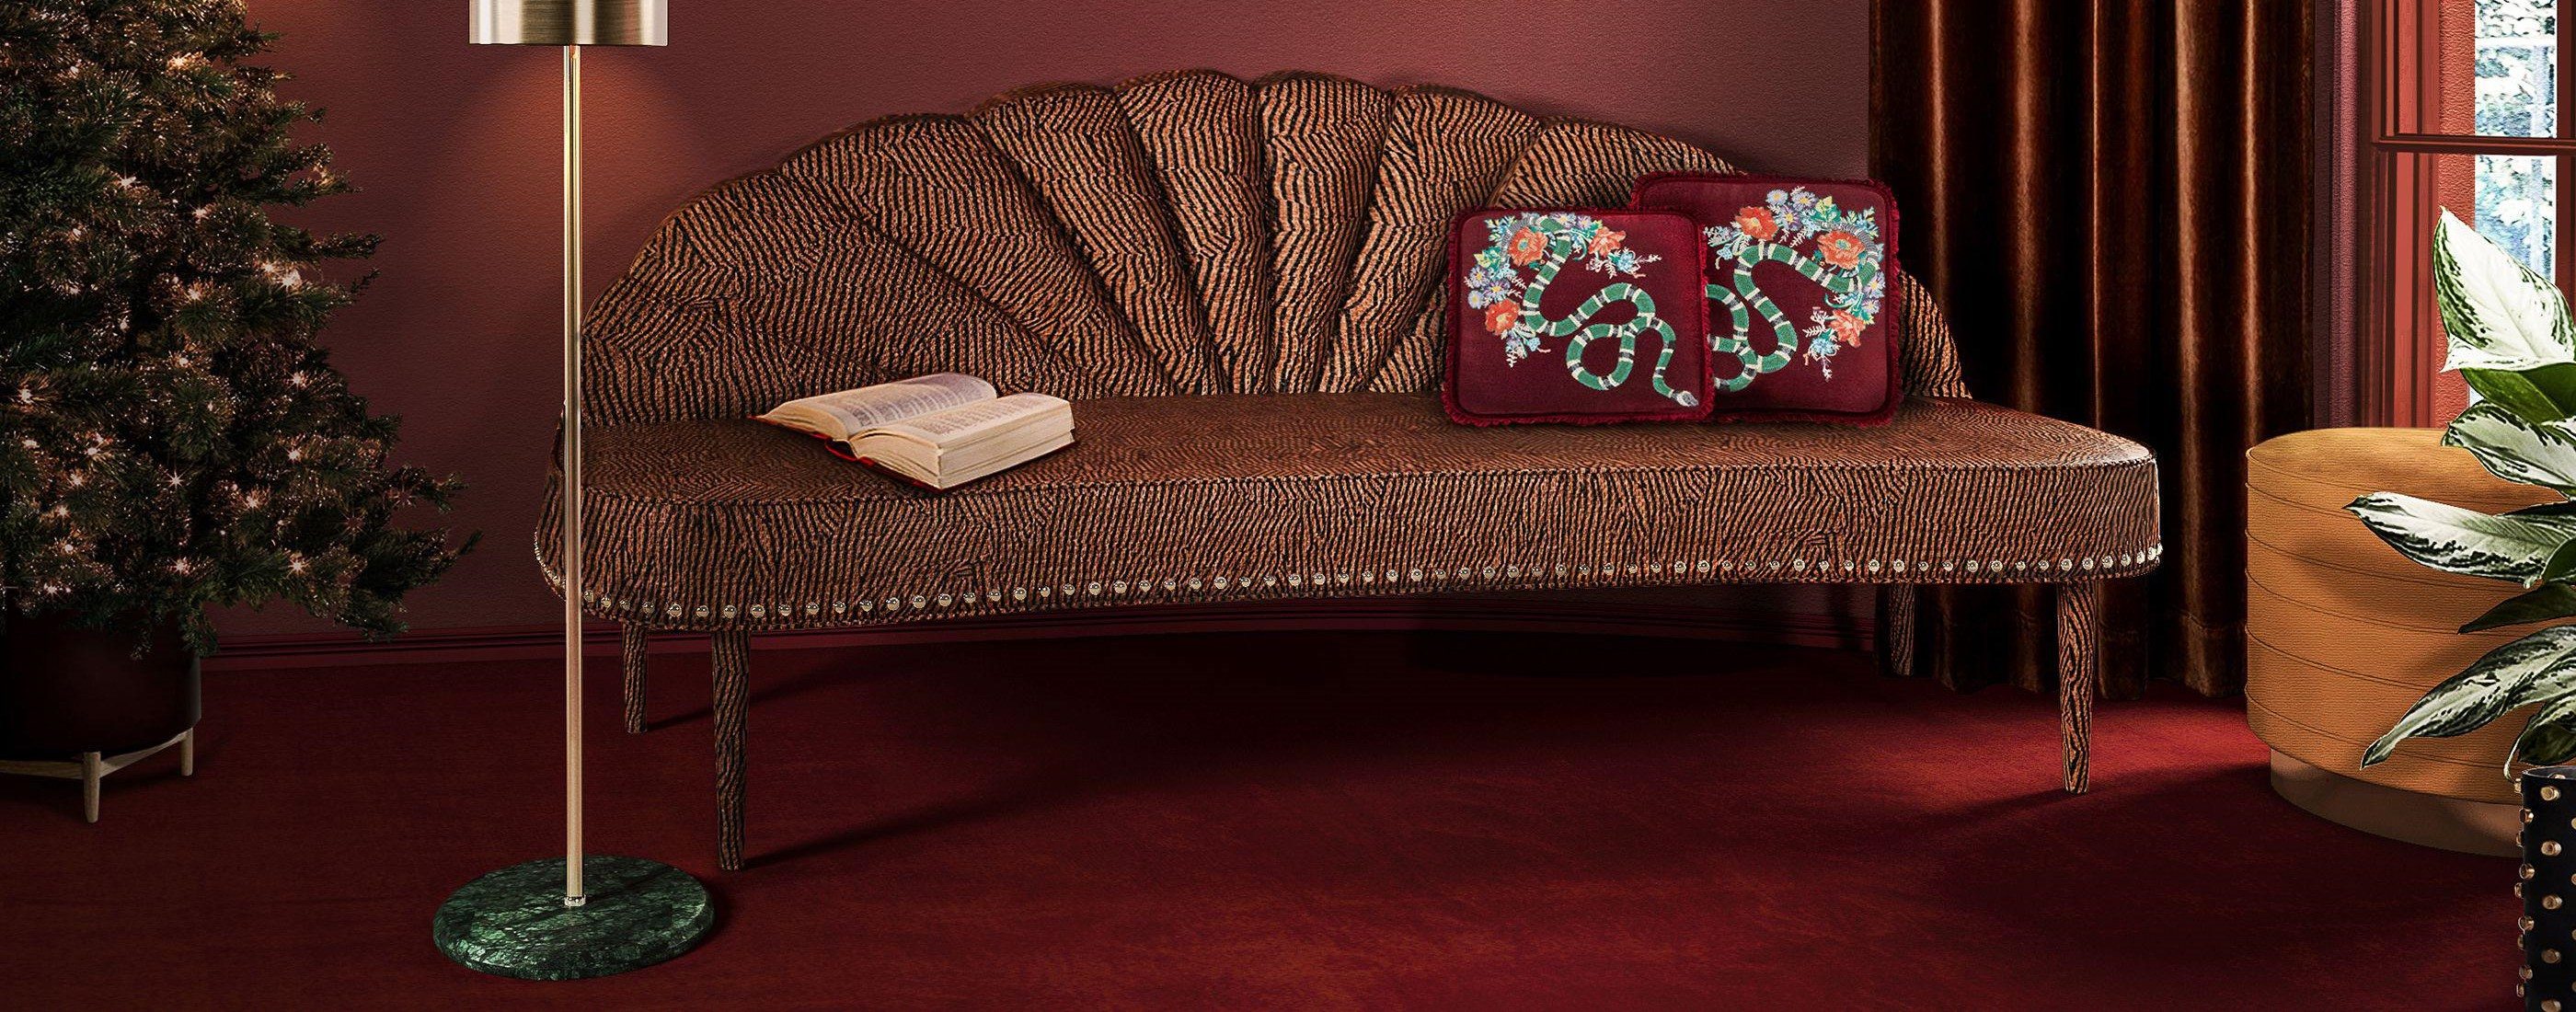 Farrah sofa with Charisse Stool